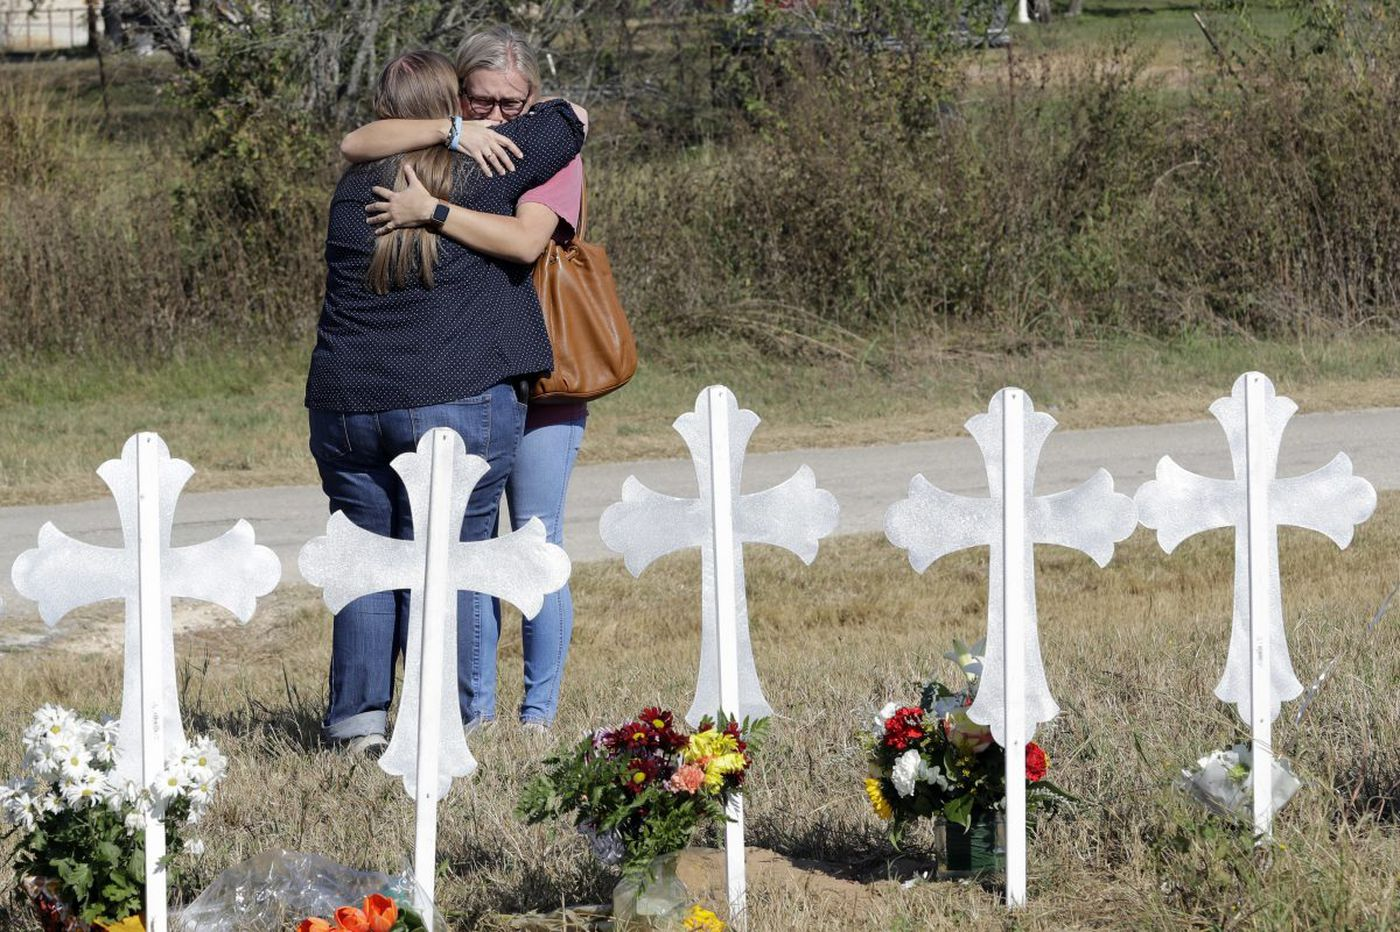 Mass killers, like the Texas shooter, often begin their violence at home | Ronnie Polaneczky